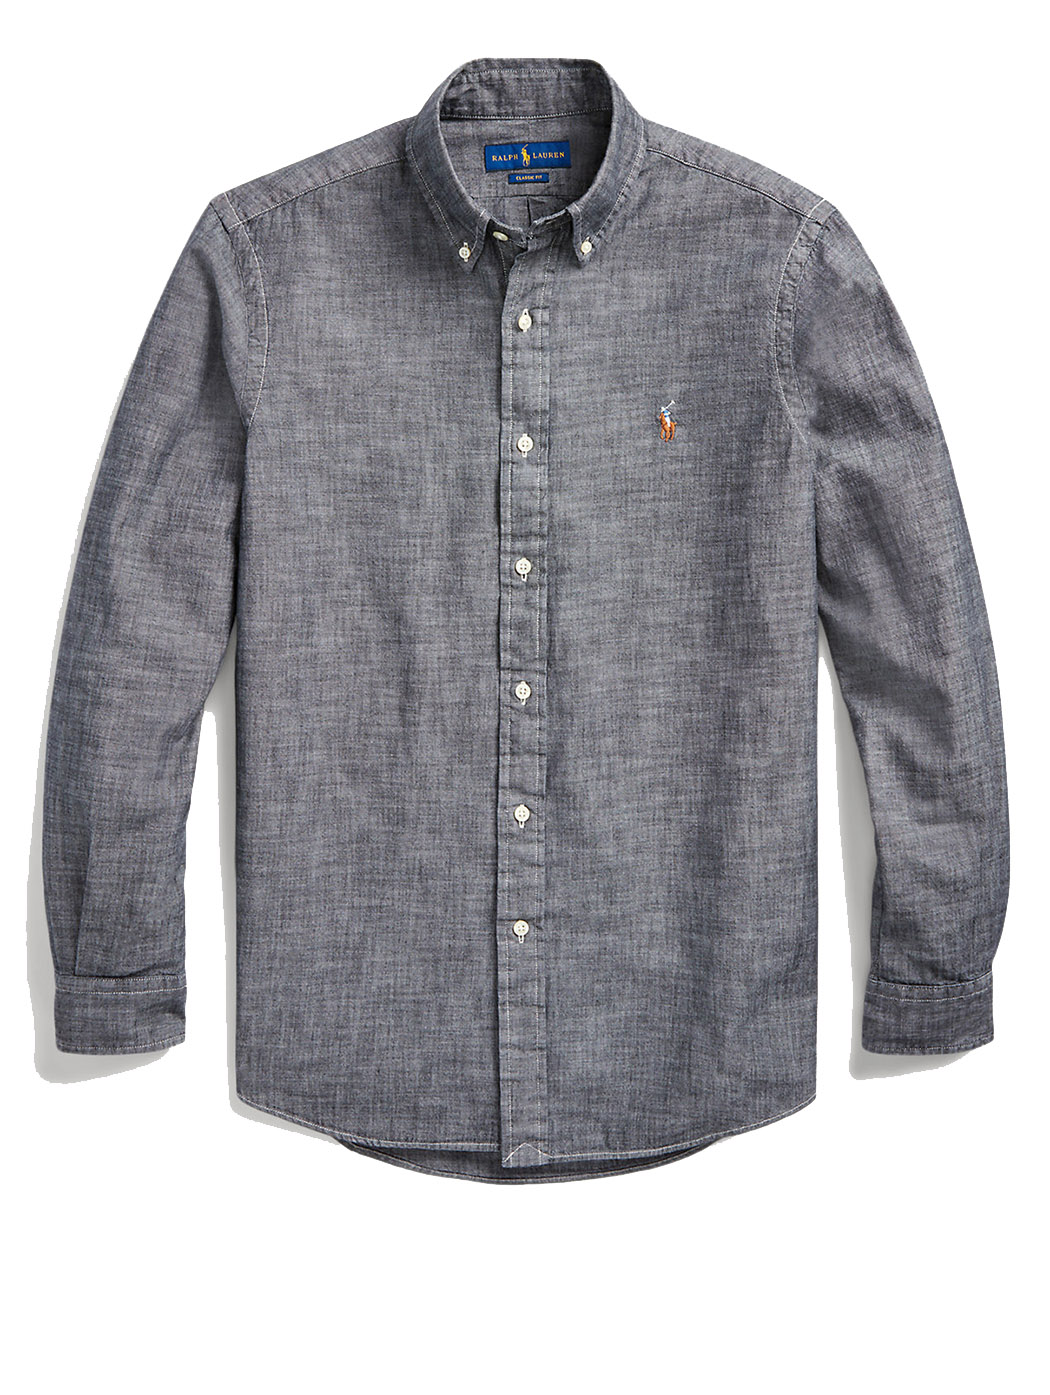 Camicia in chambray Slim-Fit 71079 003